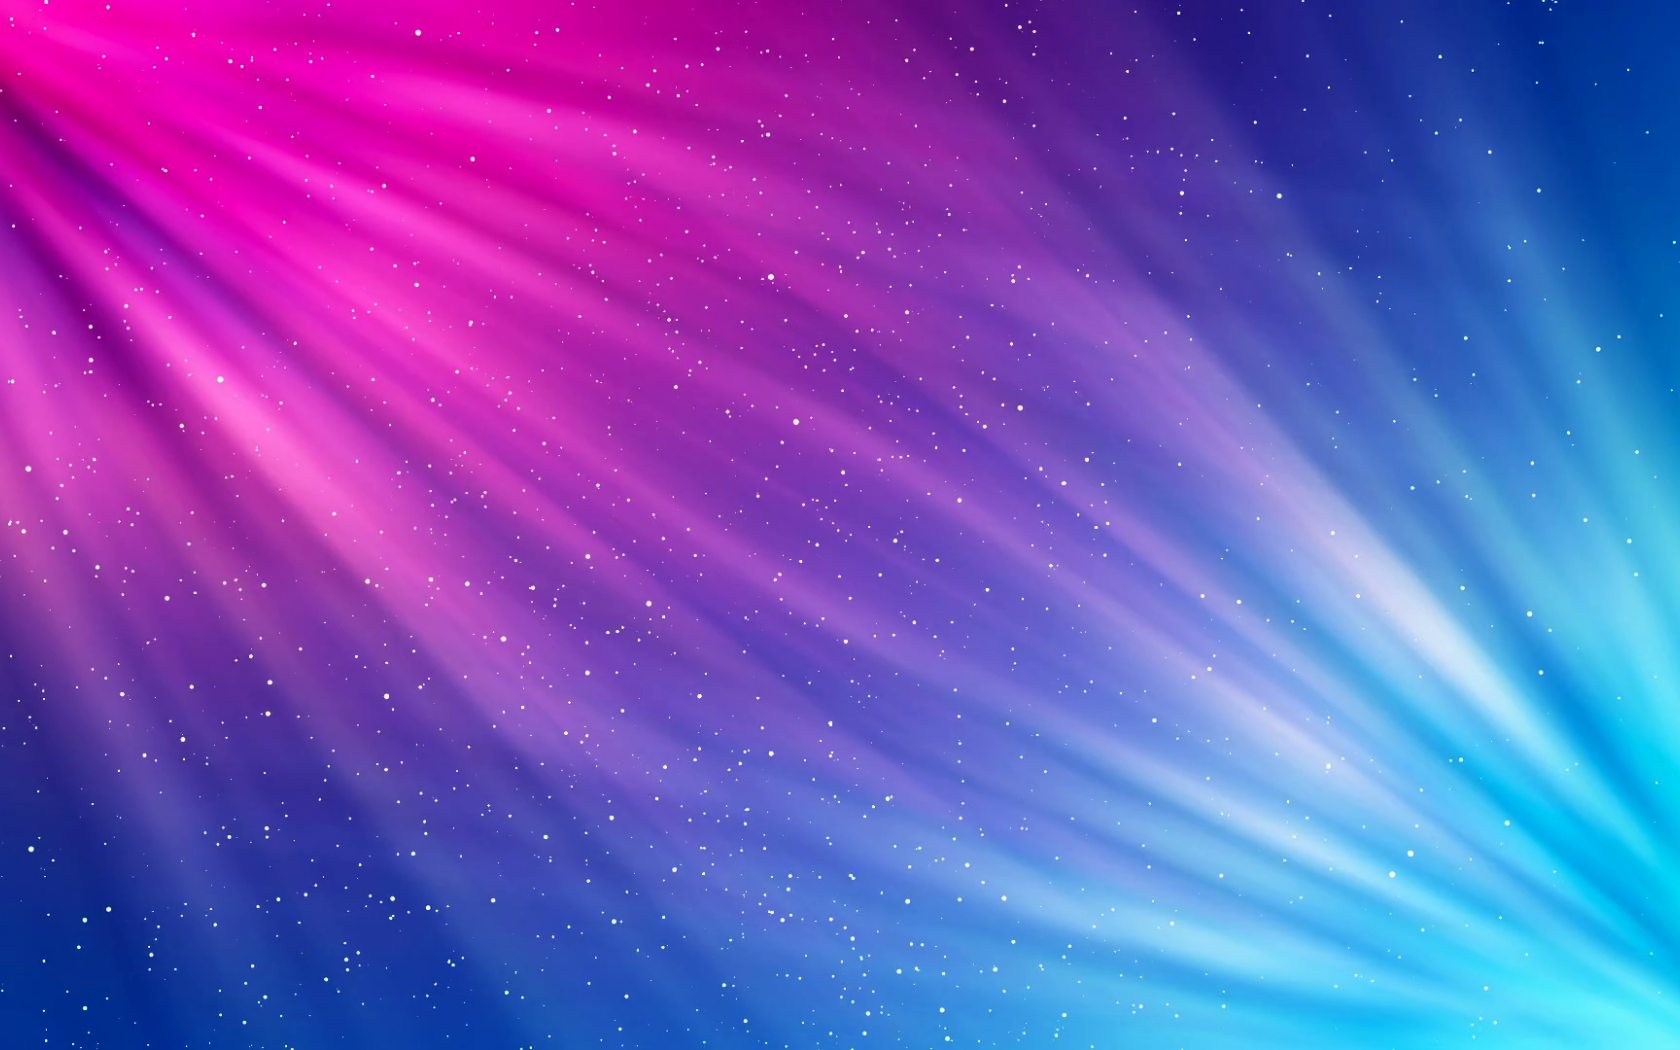 Free Download Hd Loopable Background With Nice Abstract